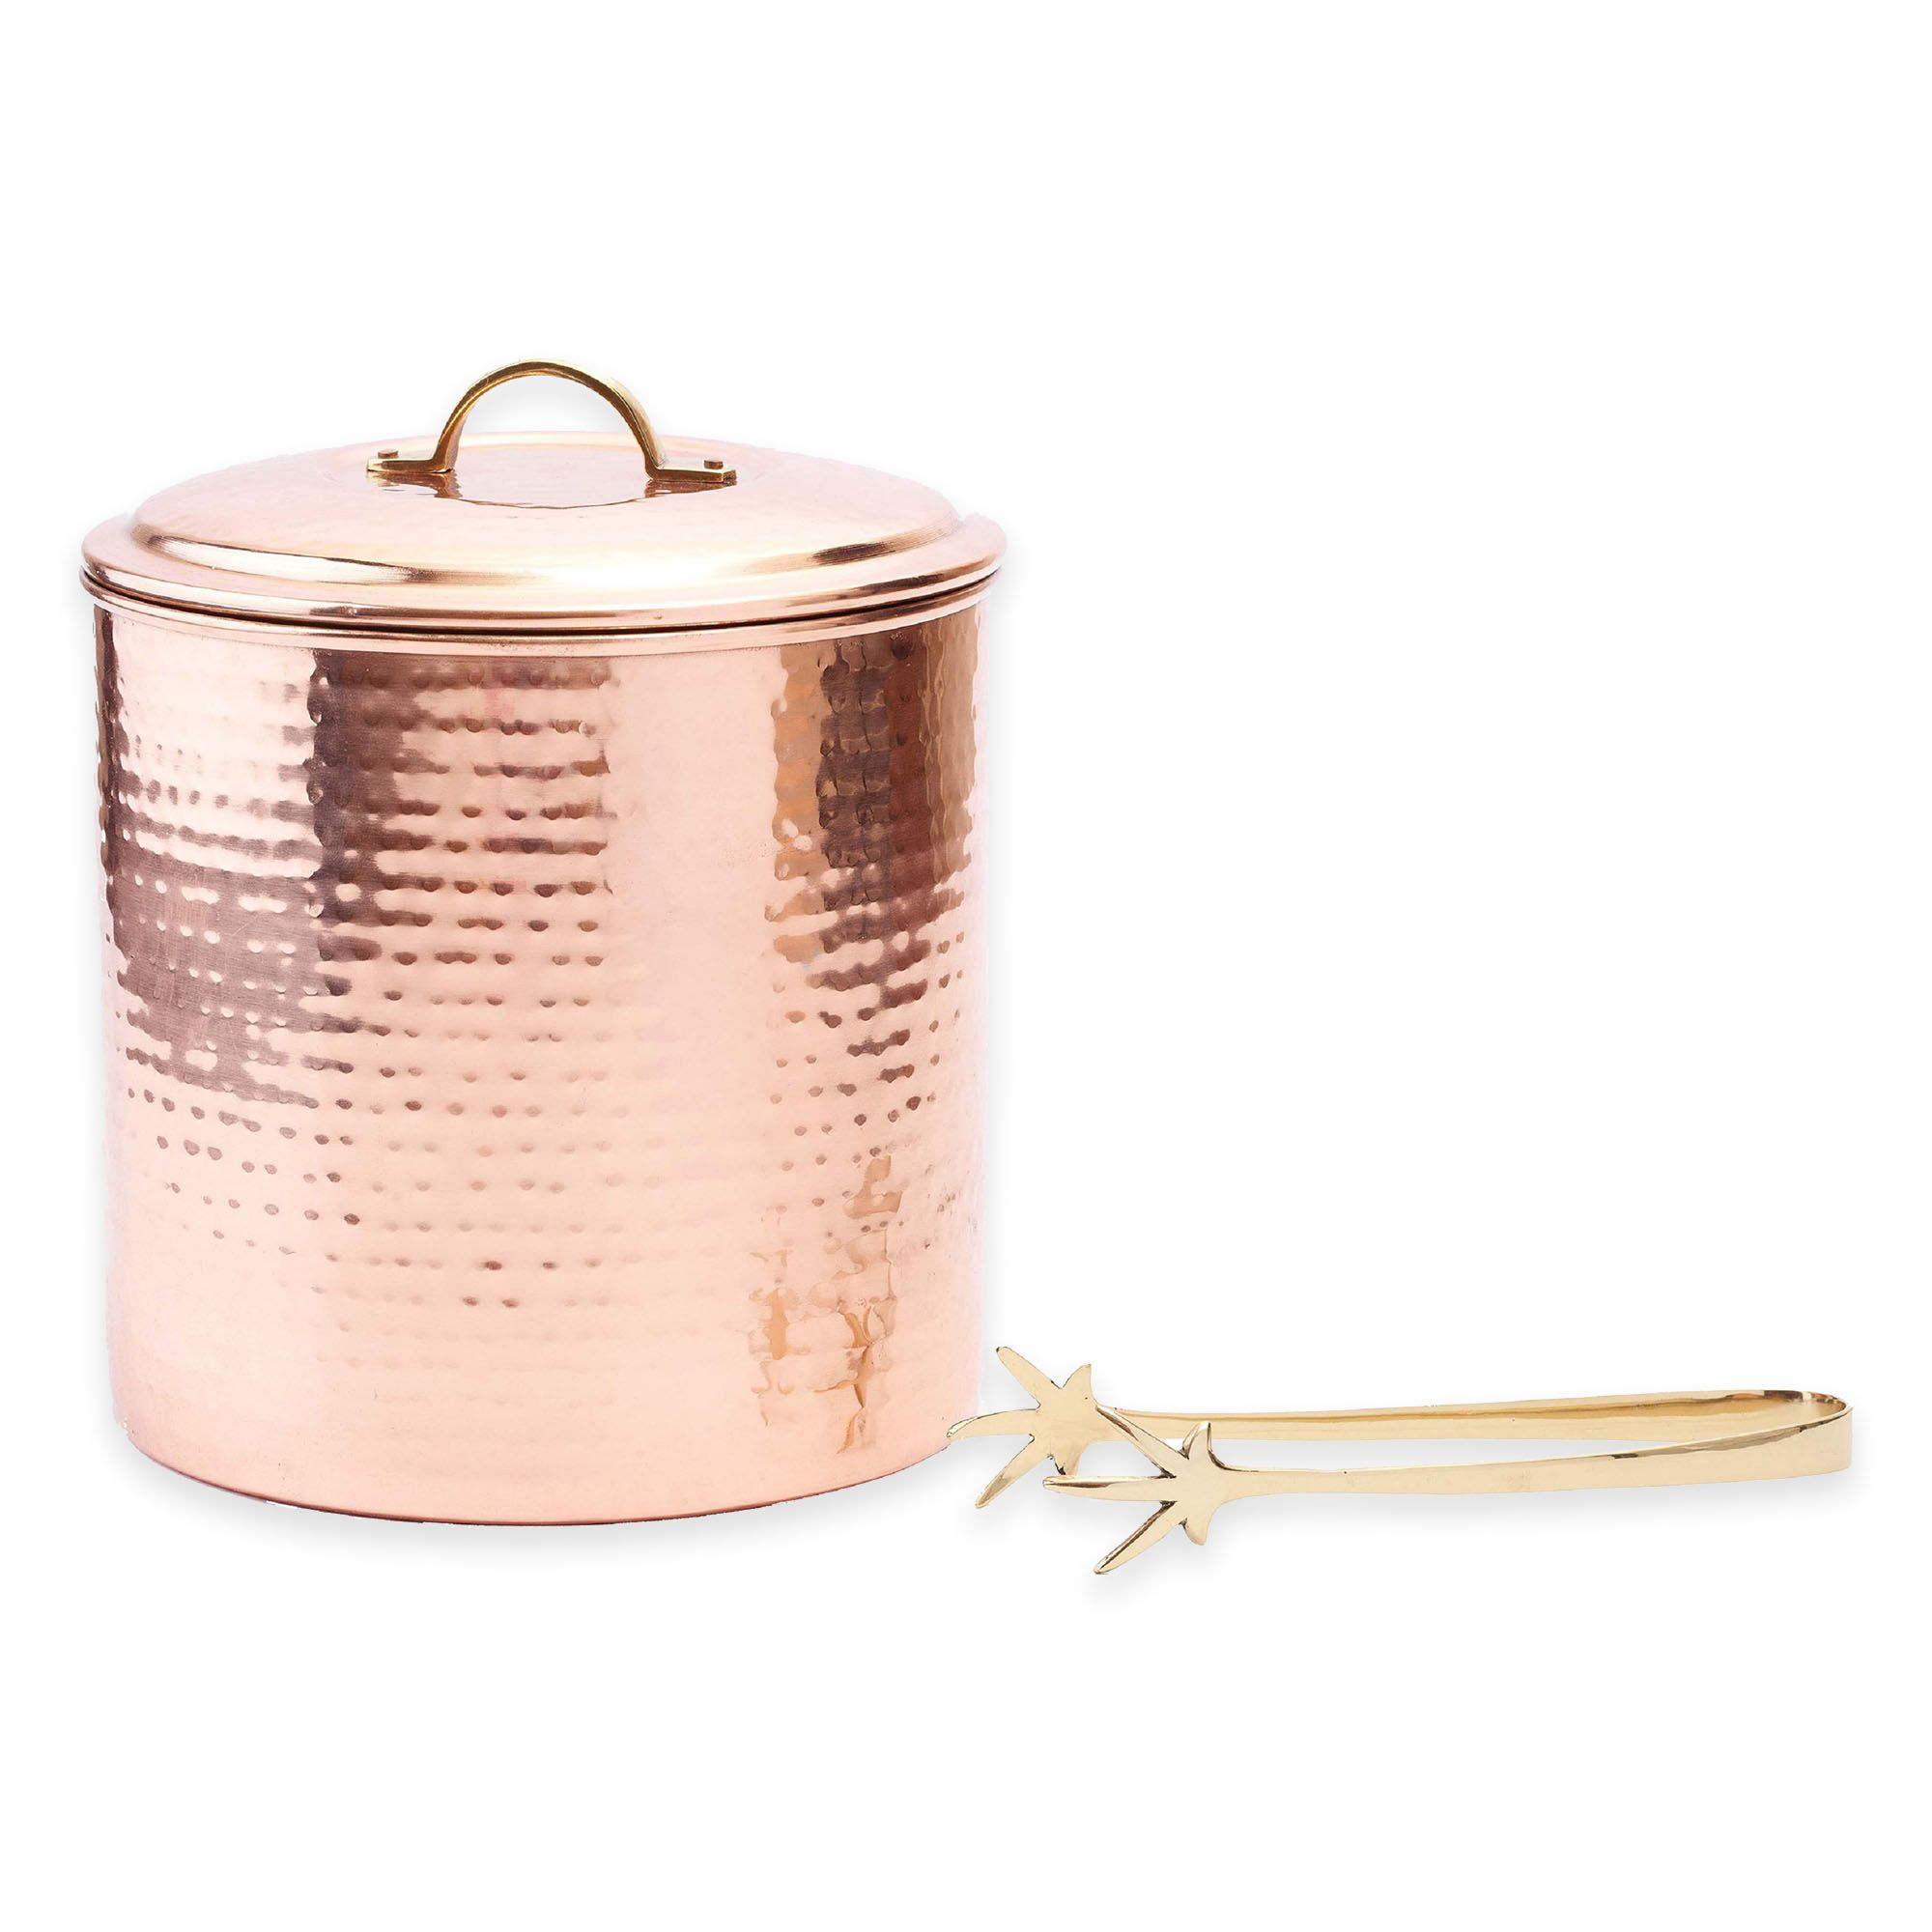 Old Dutch International Copper-Plated Hammered Ice Bucket with Tongs - BedBathandBeyond.com